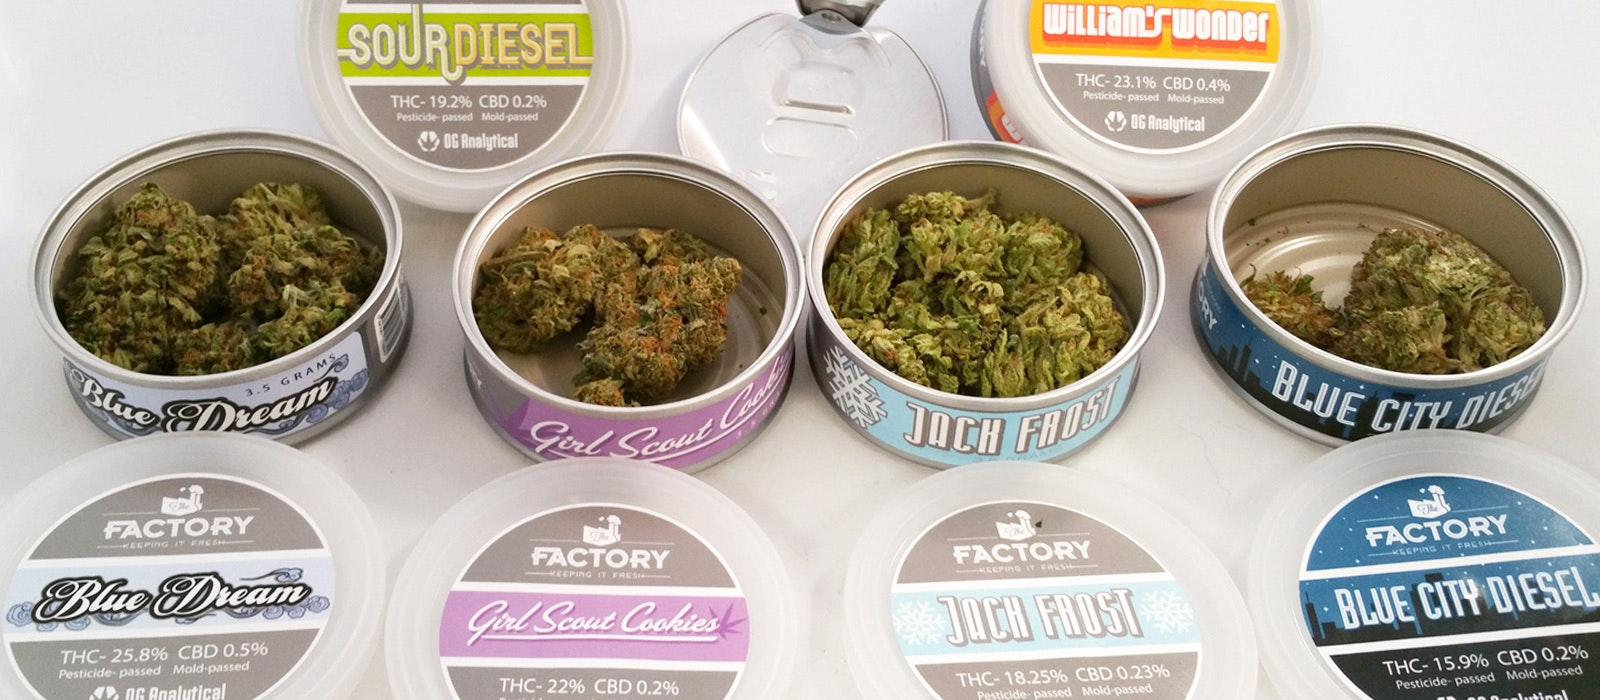 thc factory cans